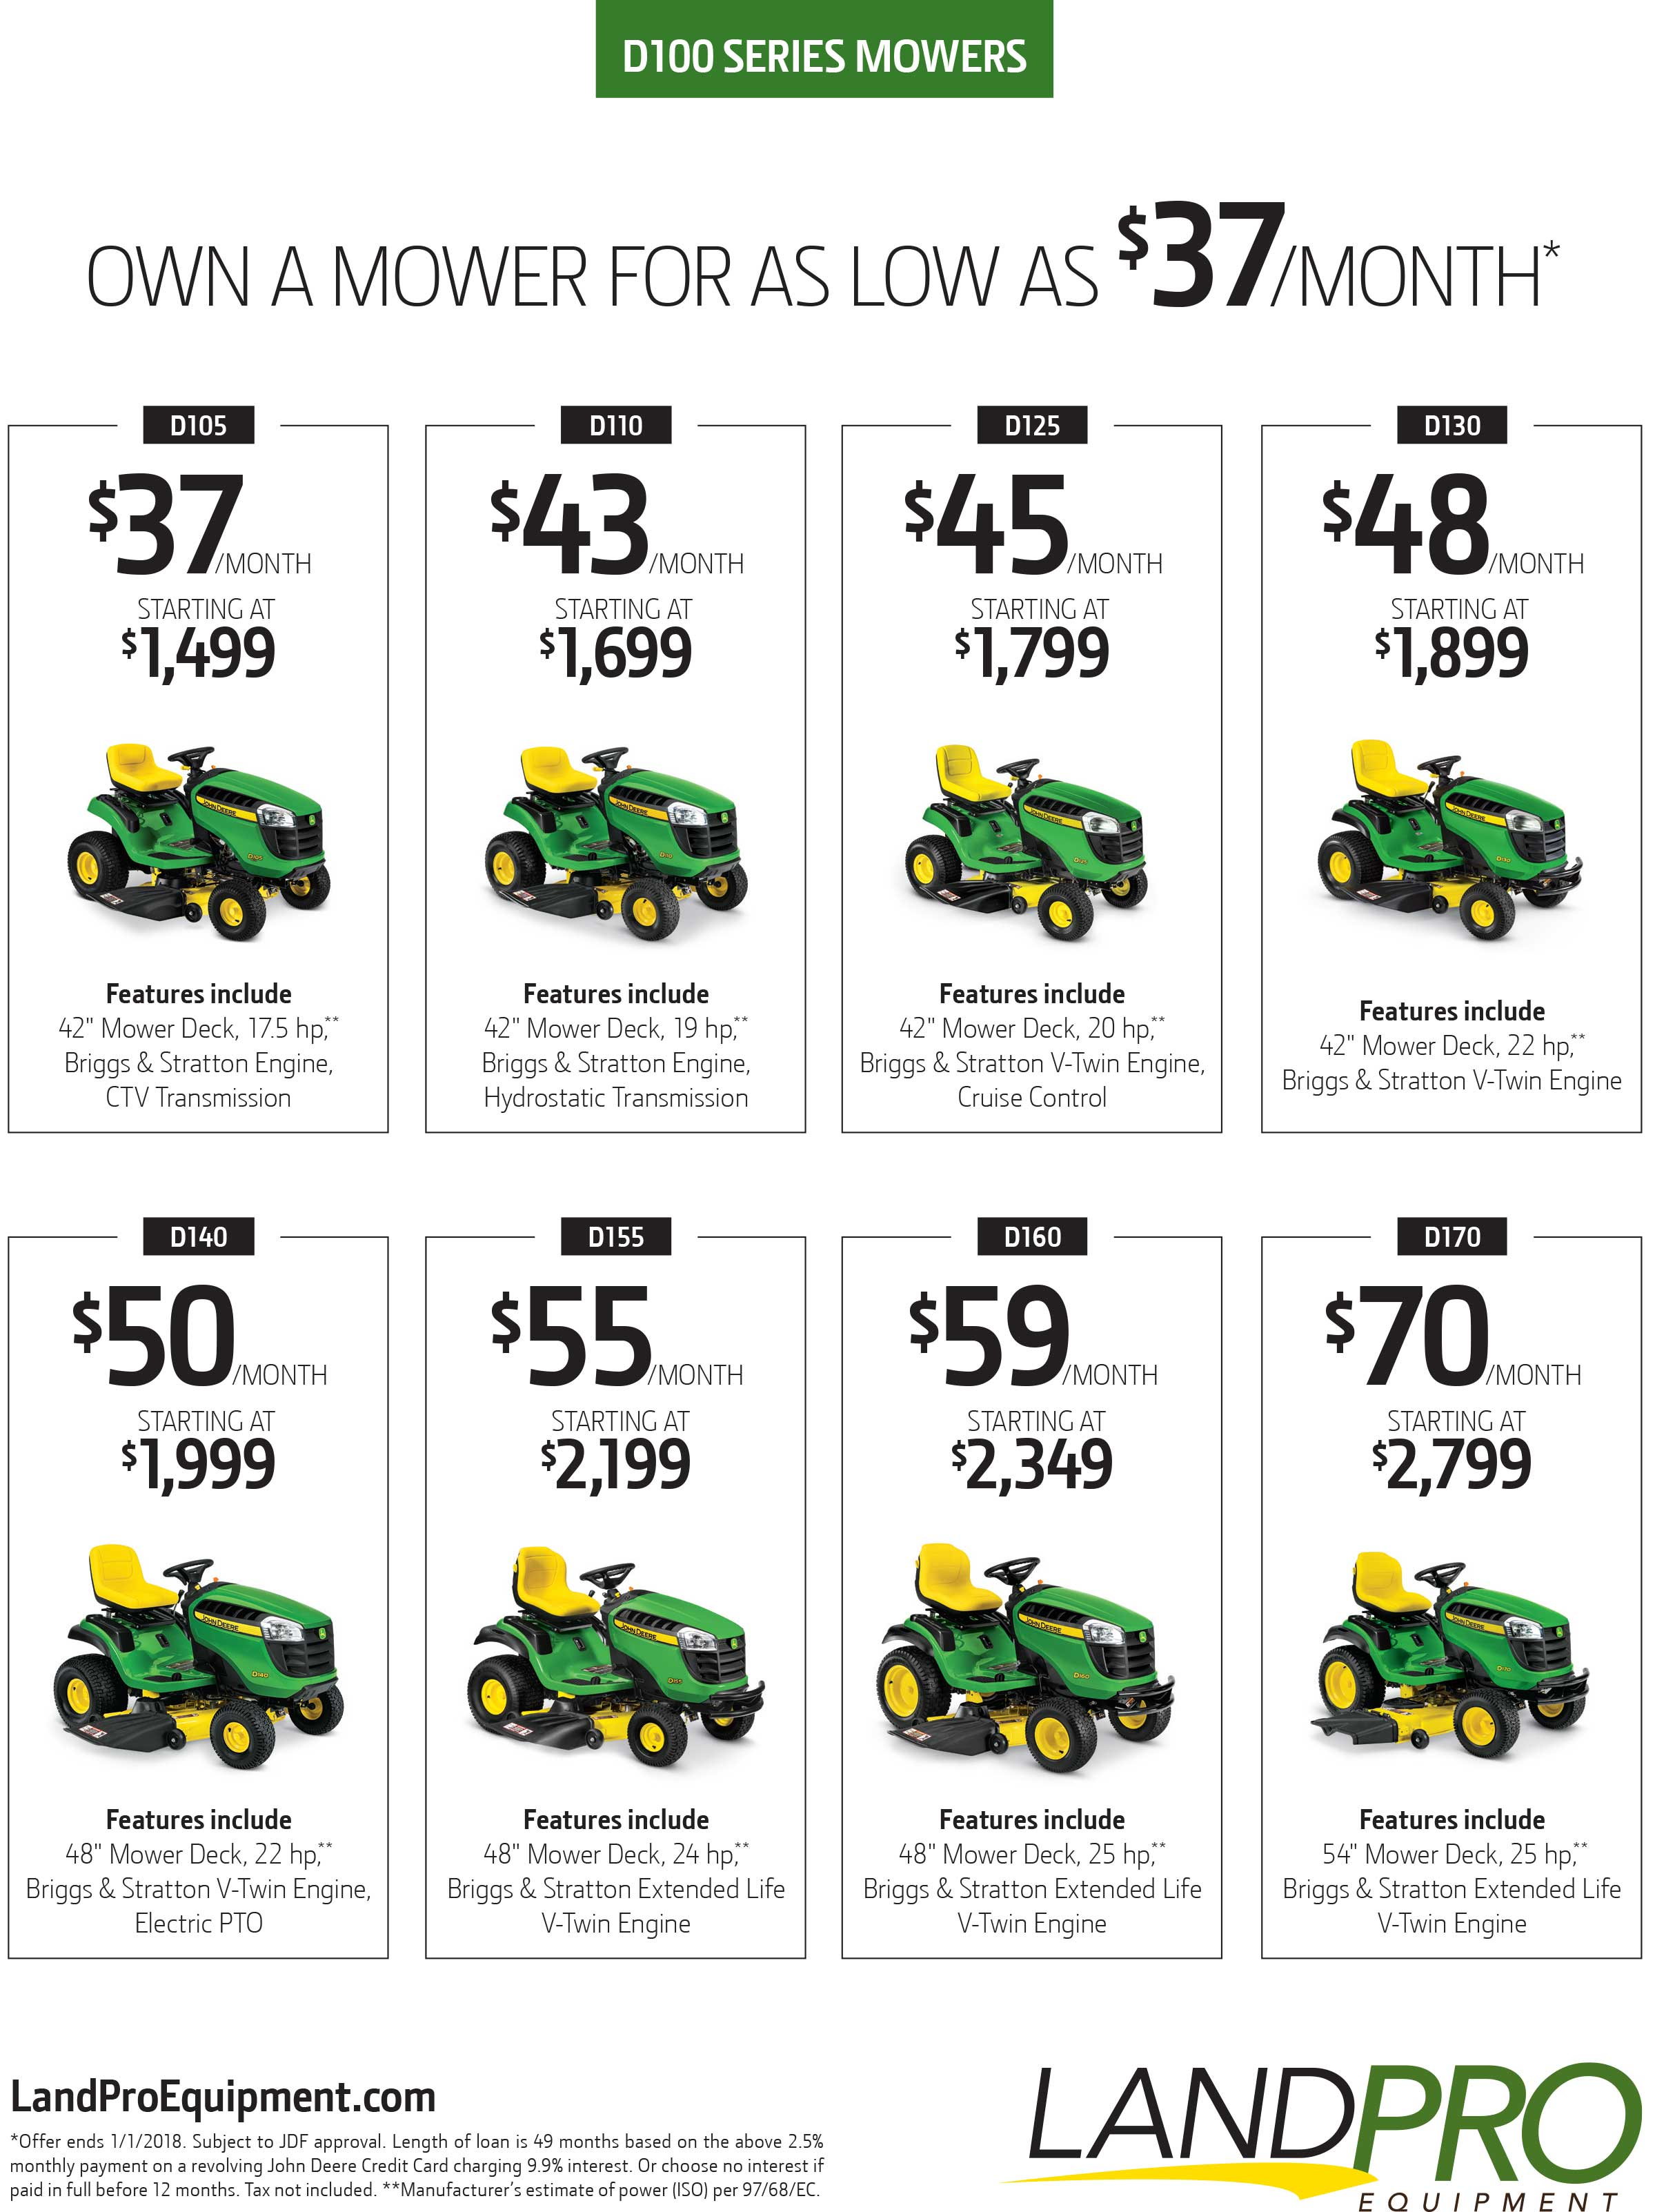 D100 Series Mowers Promotion